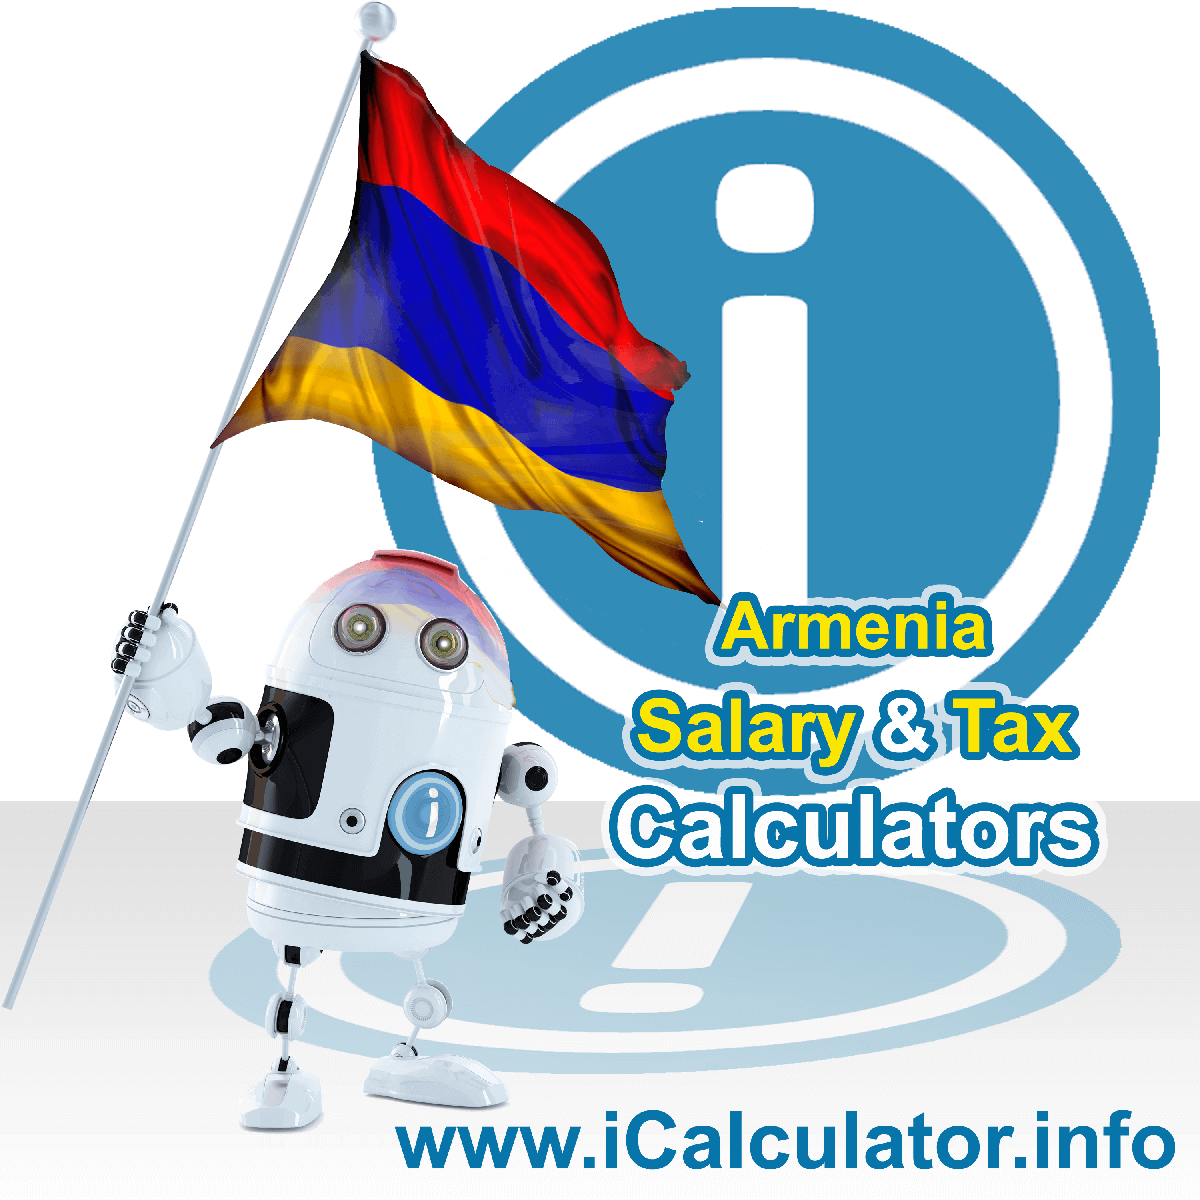 Armenia Wage Calculator. This image shows the Armenia flag and information relating to the tax formula for the Armenia Tax Calculator